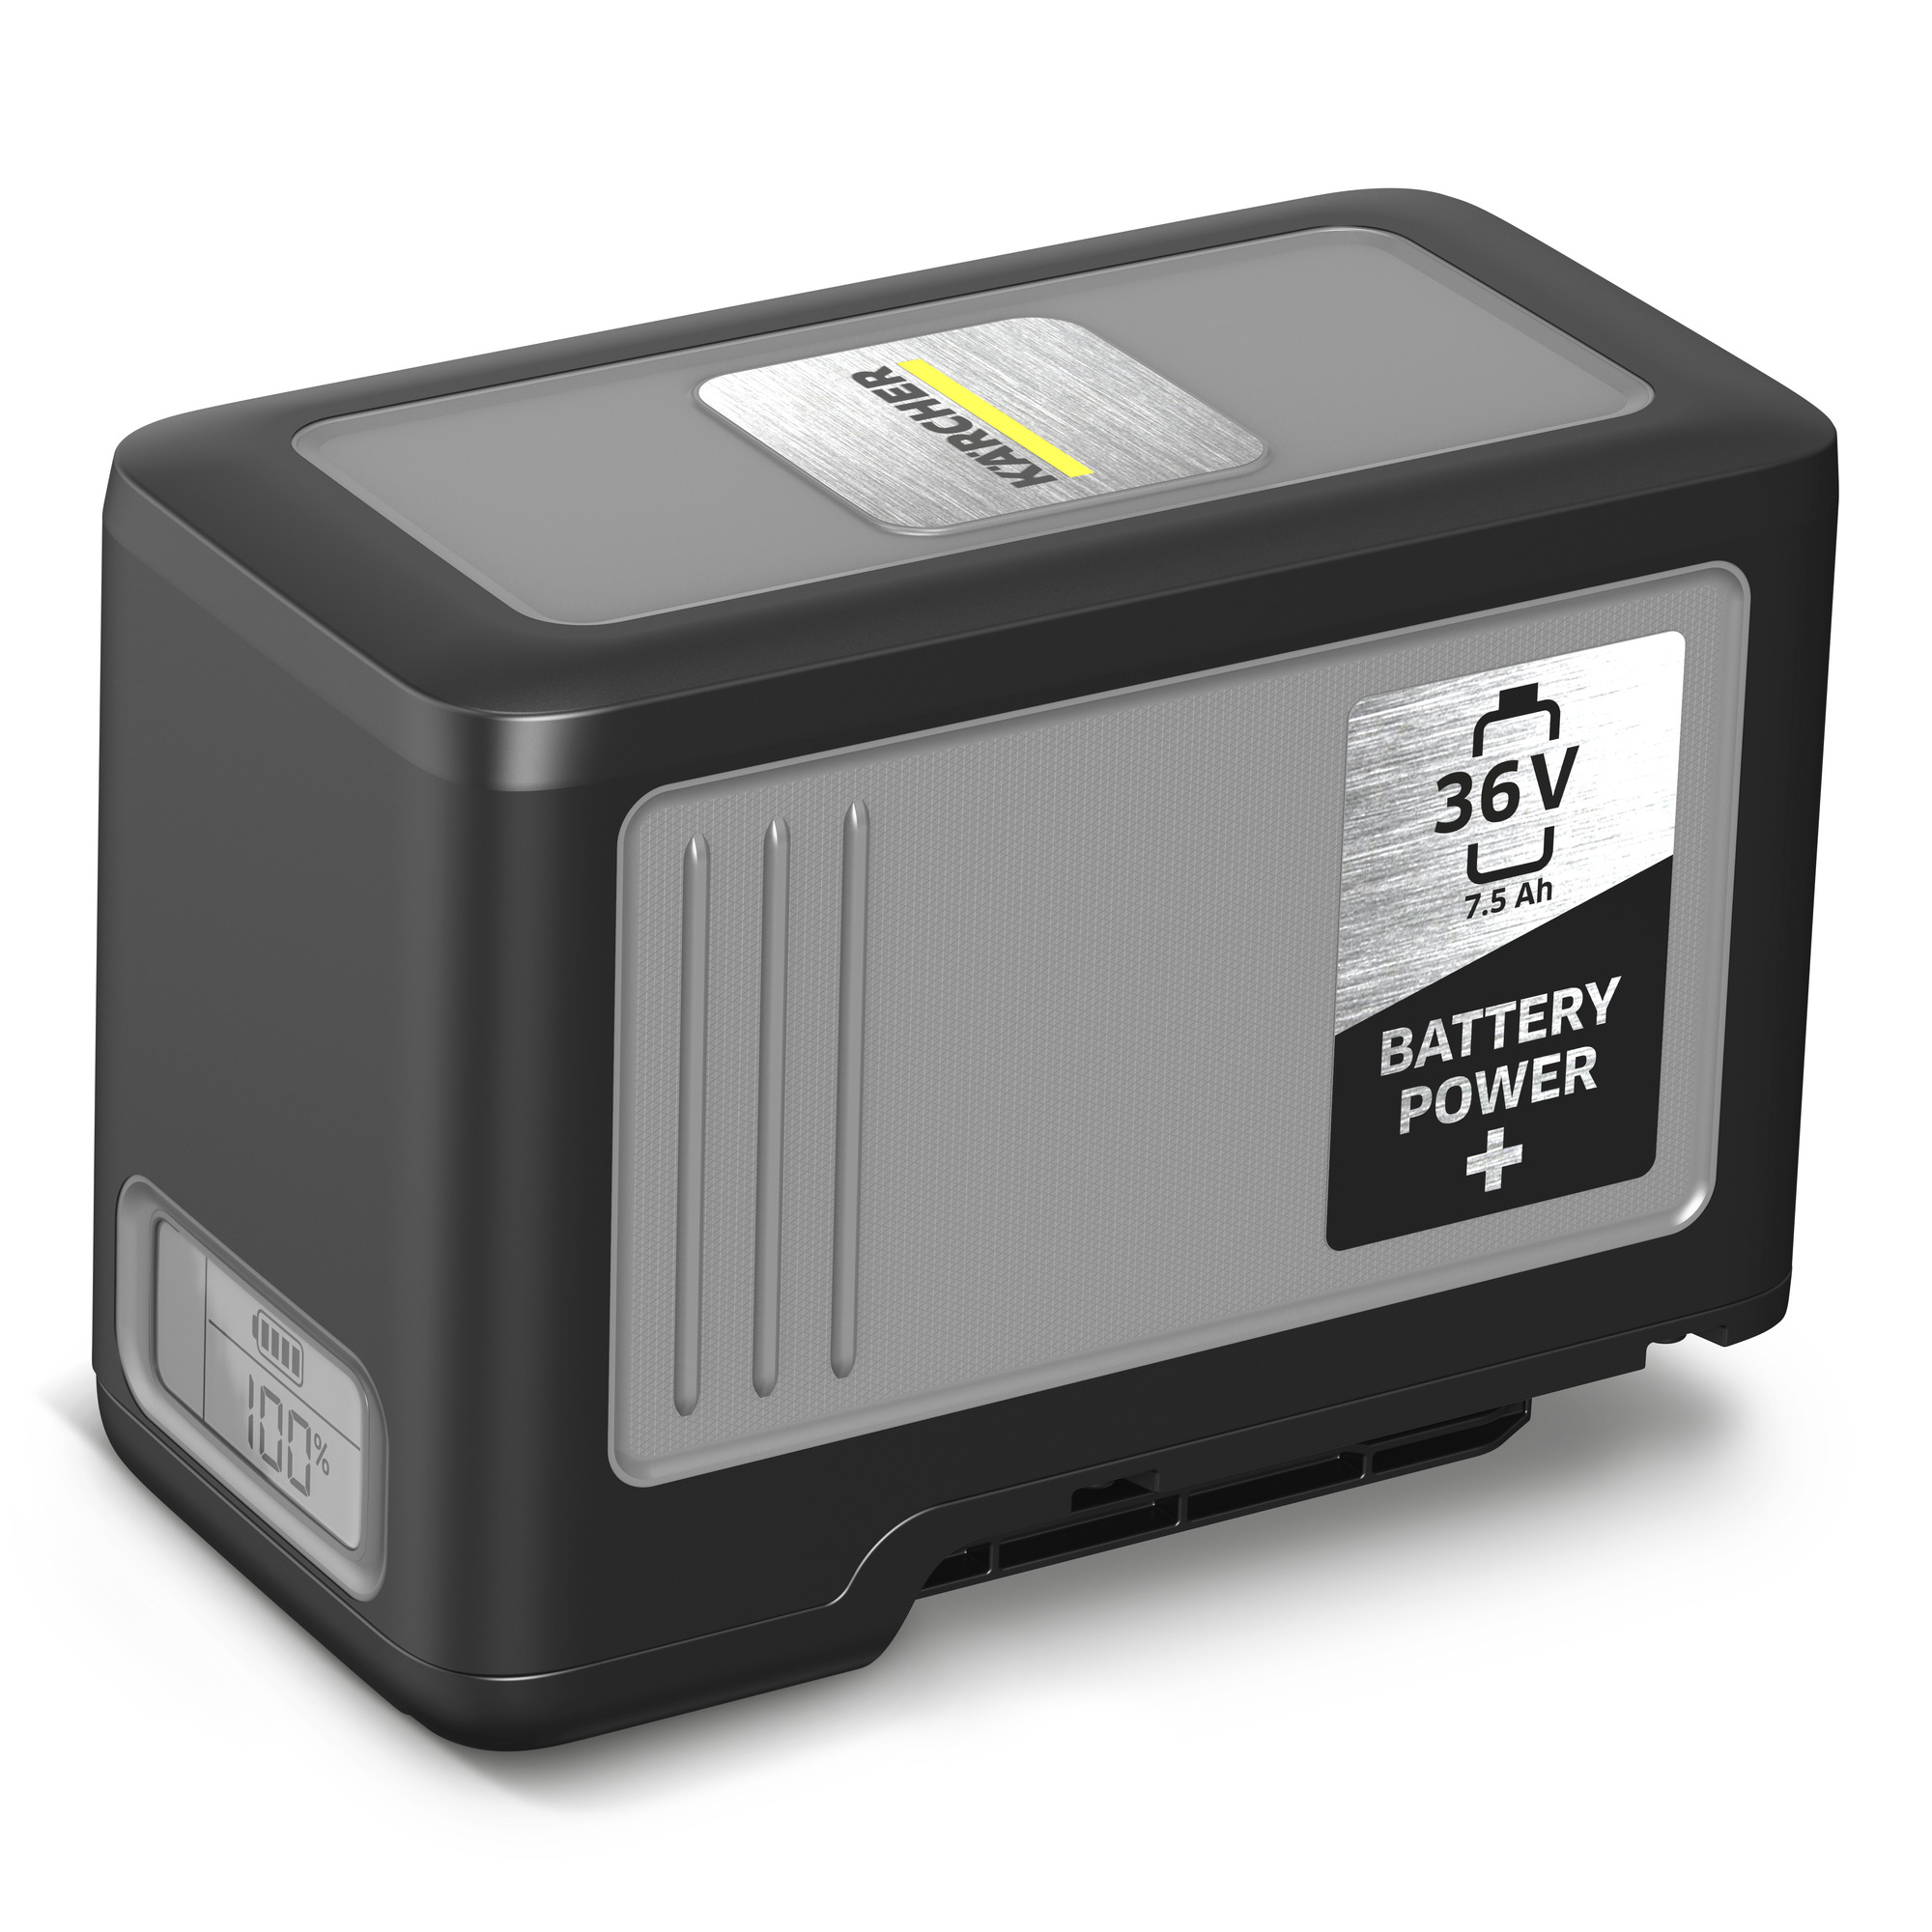 Μπαταρία ιόντων λιθίου Battery Power+ 36/75 2.445-043.0 KARCHER - KARCHER PREMIER CENTER